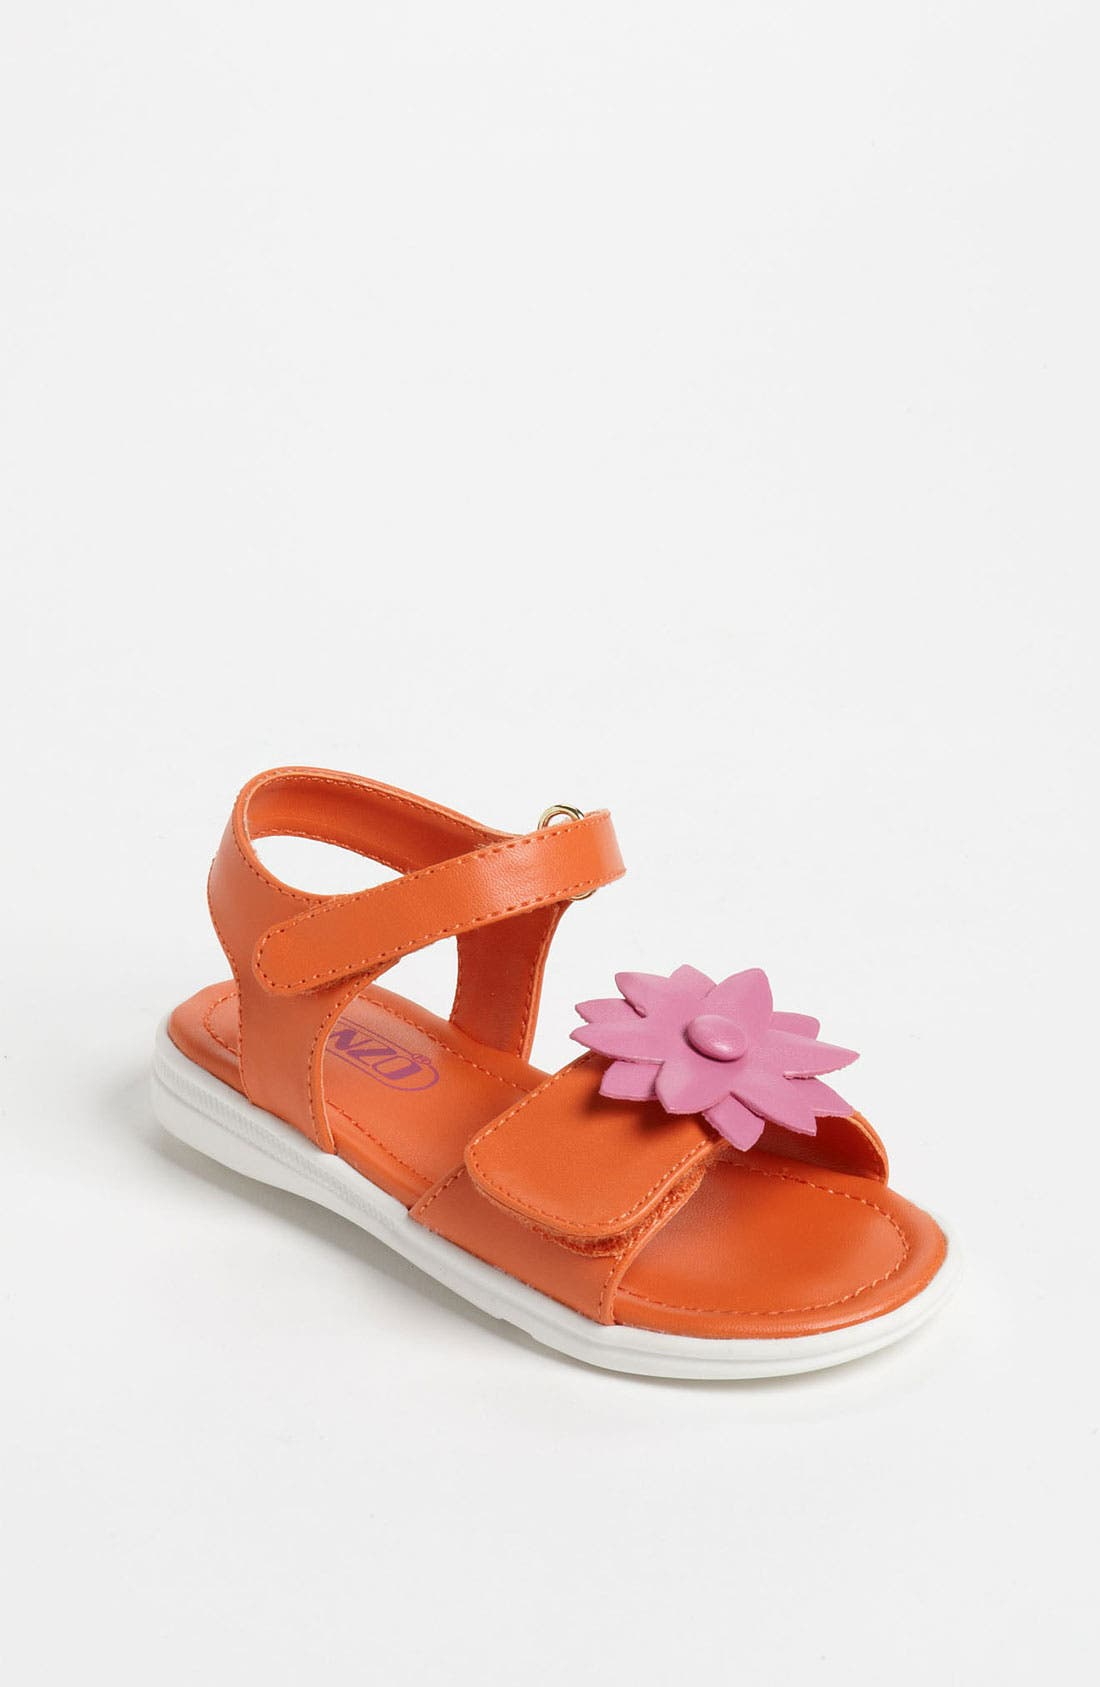 Alternate Image 1 Selected - Enzo 'Ilana' Sandal (Toddler)